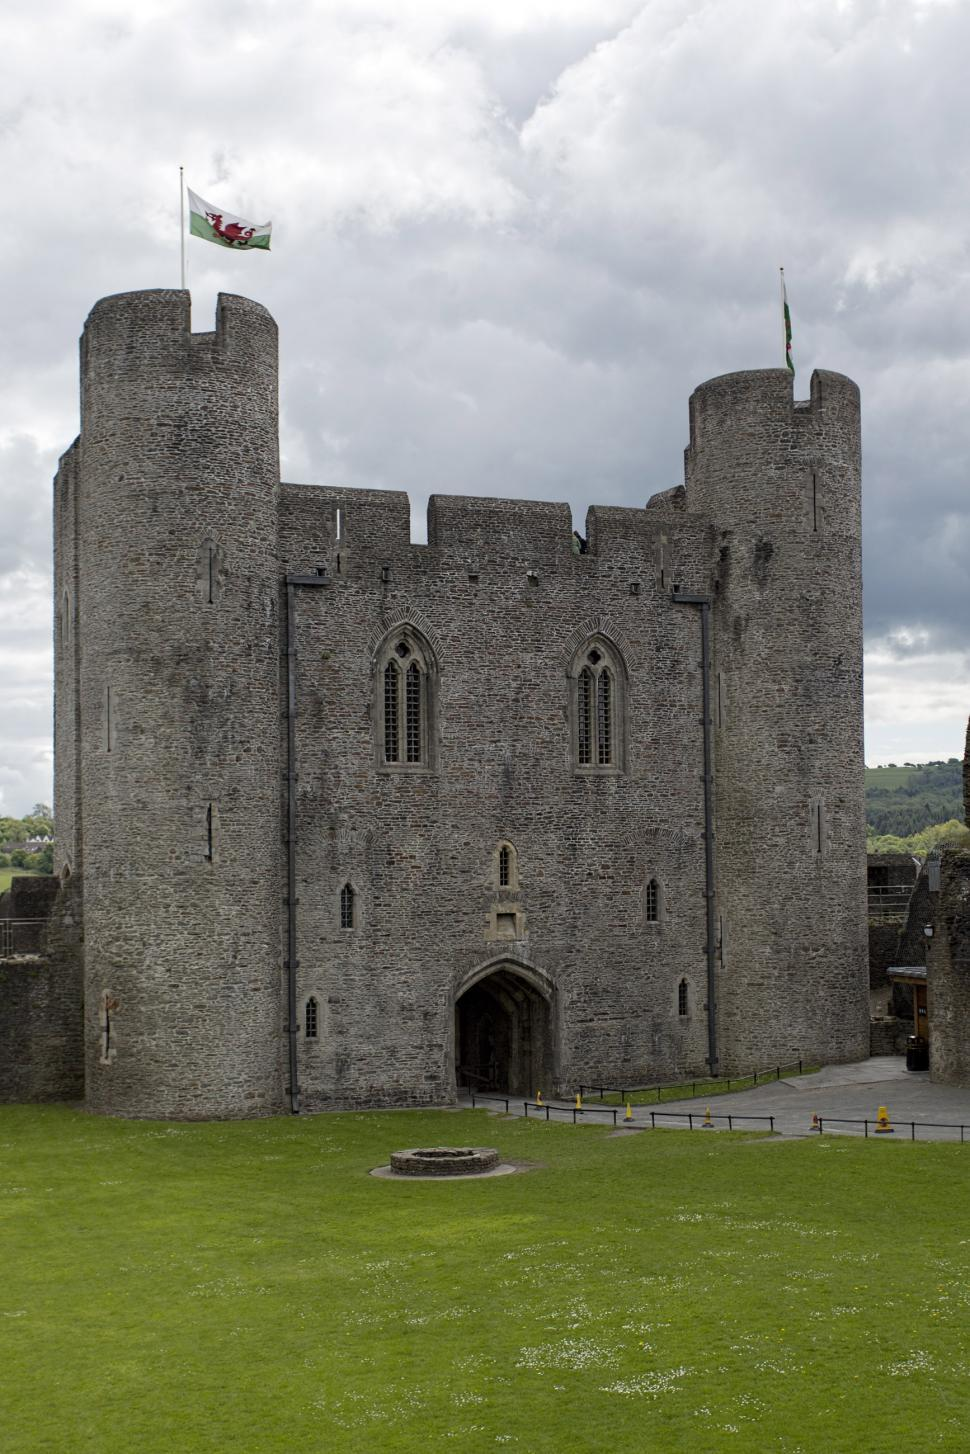 Download Free Stock HD Photo of Caerphilly castle  Online